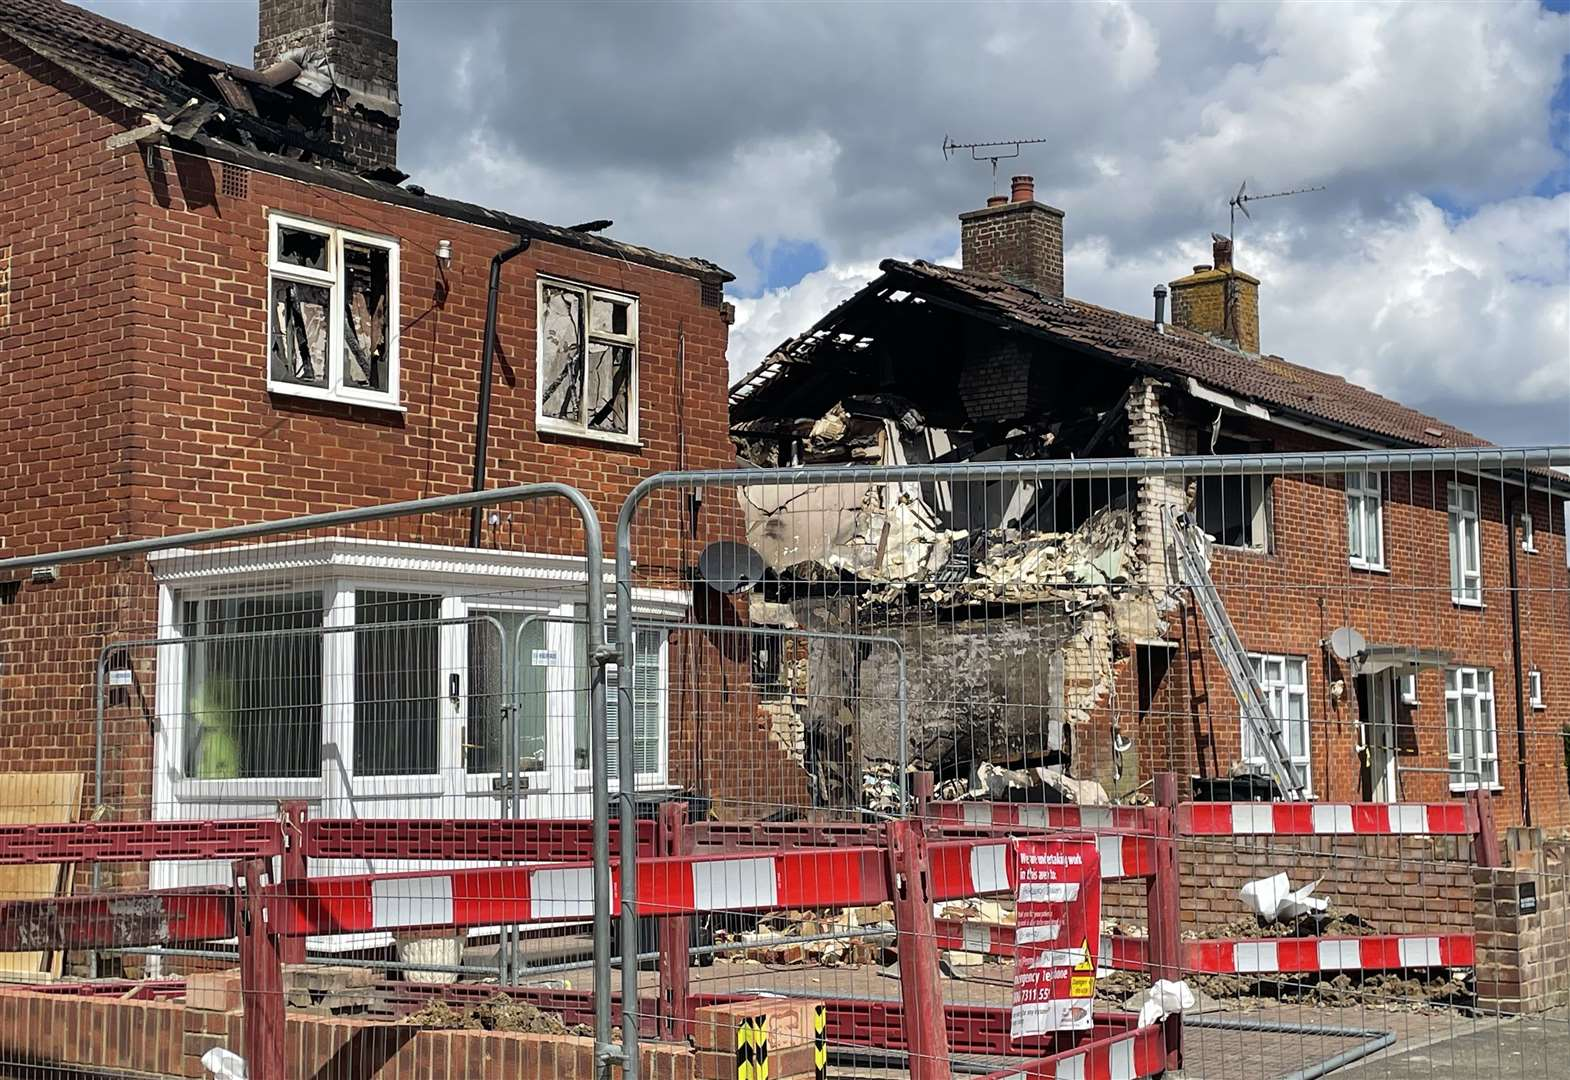 Cause of house explosion revealed